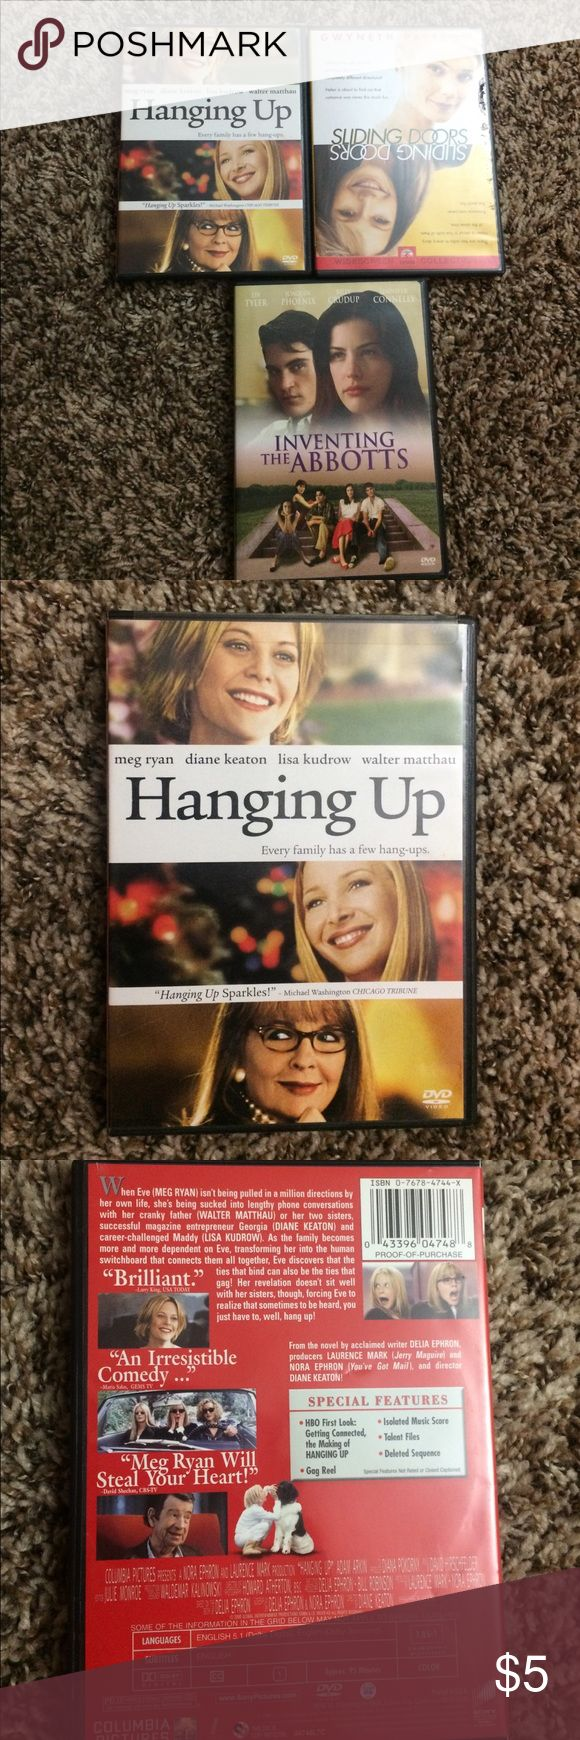 3 set chick flick/drama movies All have been watched a few times. $12 asking for $5 Other